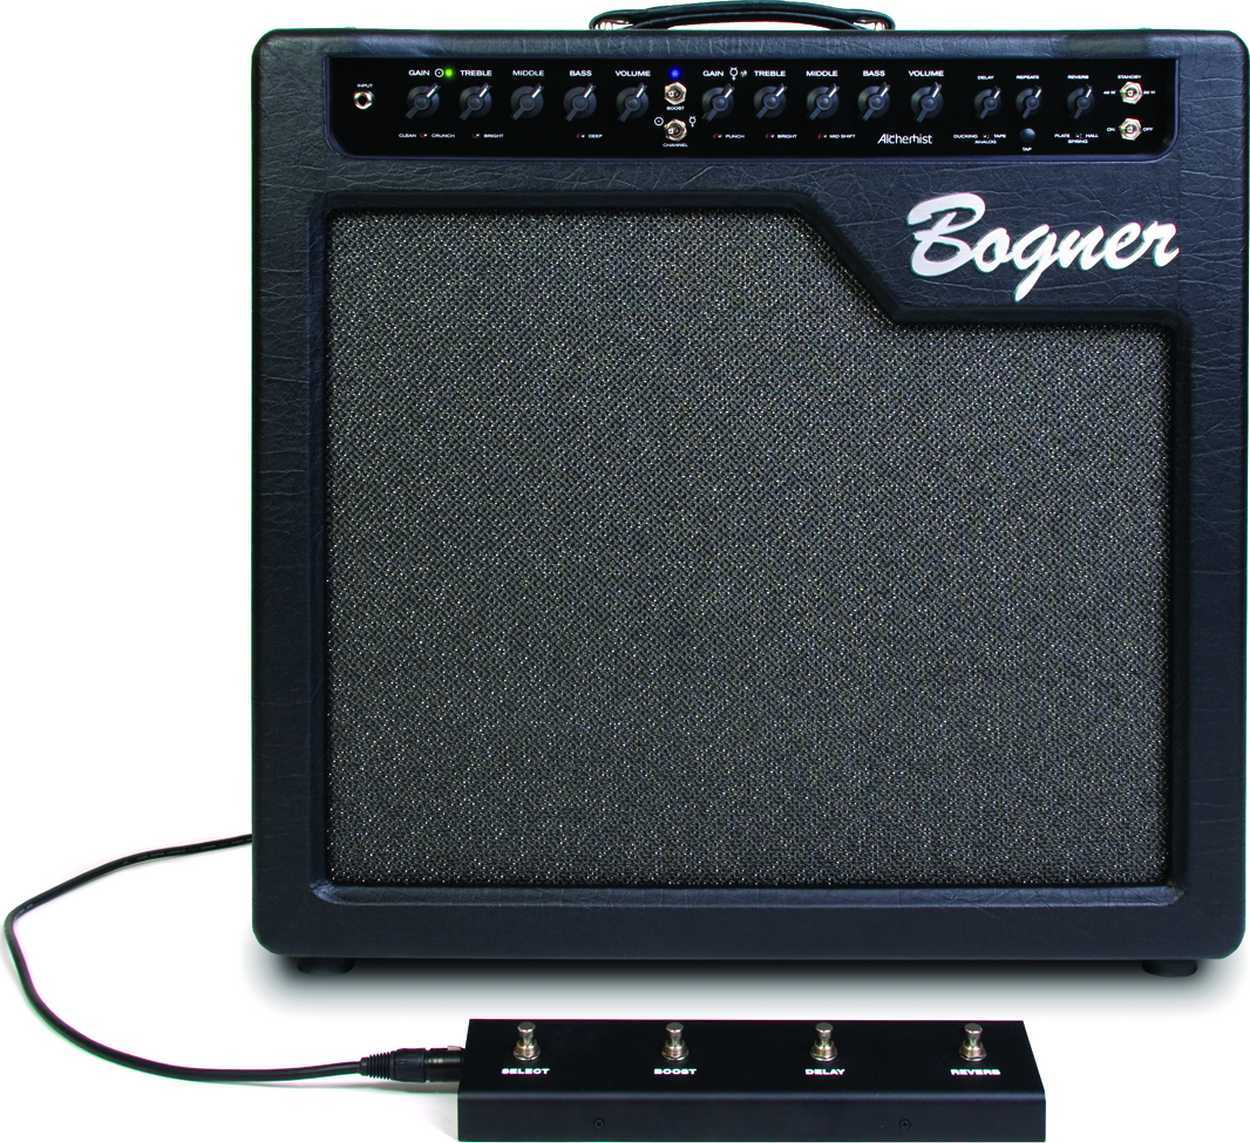 user reviews bogner alchemist 112 combo audiofanzine rh en audiofanzine com bogner alchemist 112 combo manual bogner alchemist 212 manual